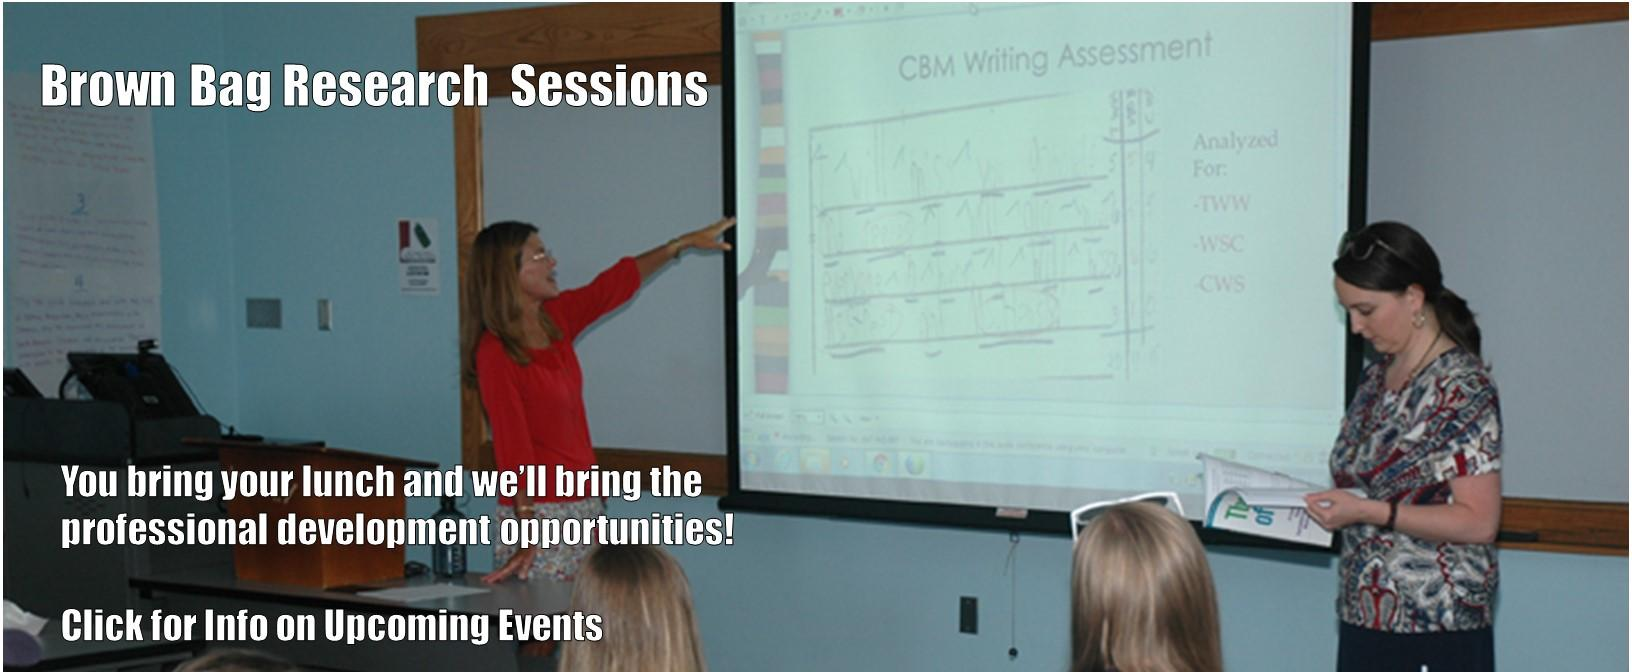 Brown Bag Research sessions information and link